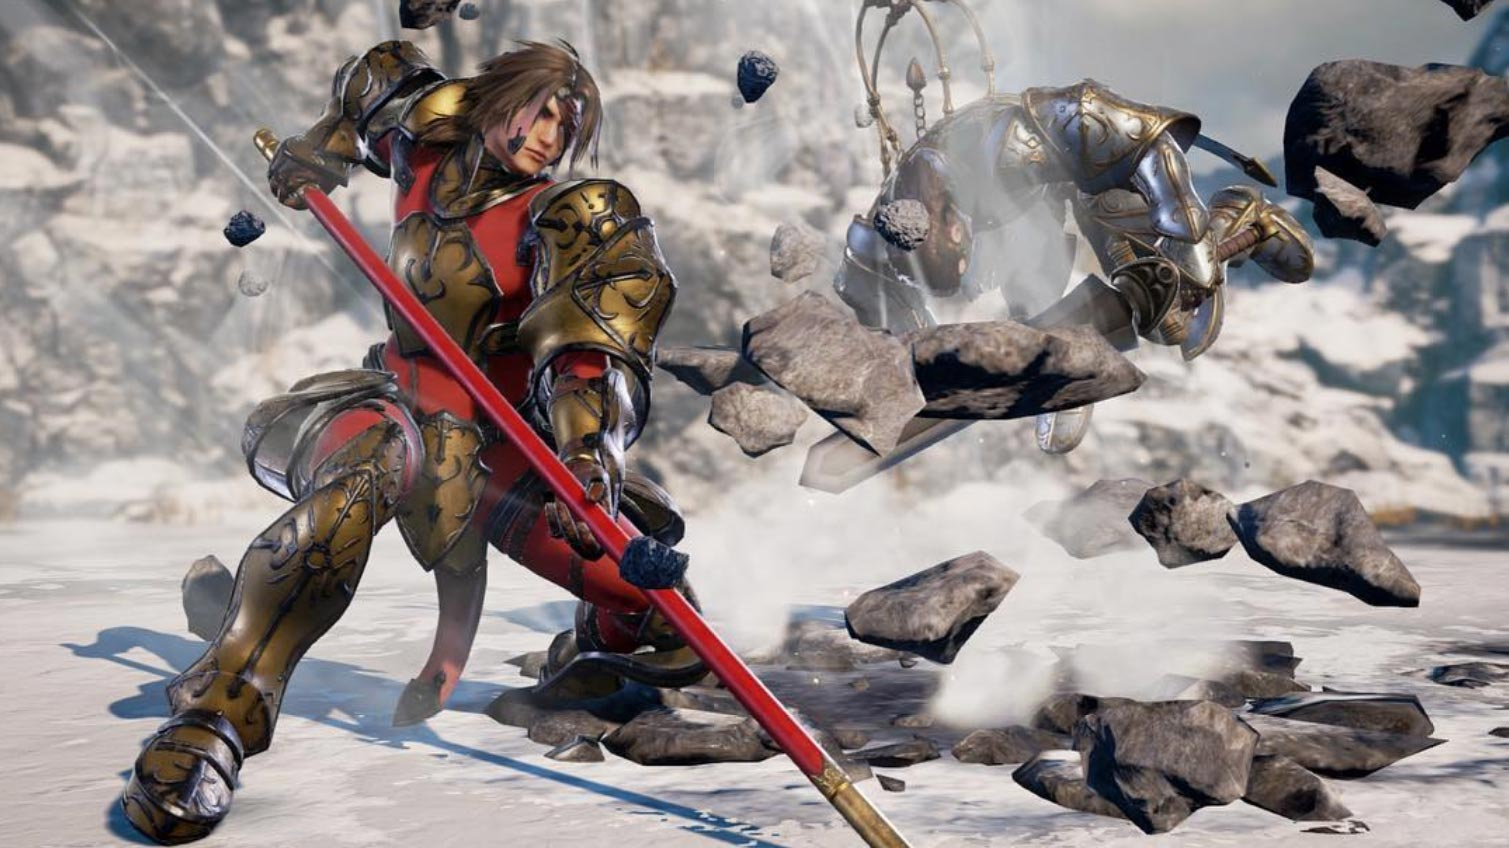 Soul Calibur 6 DLC Pack 3 preview 3 out of 10 image gallery